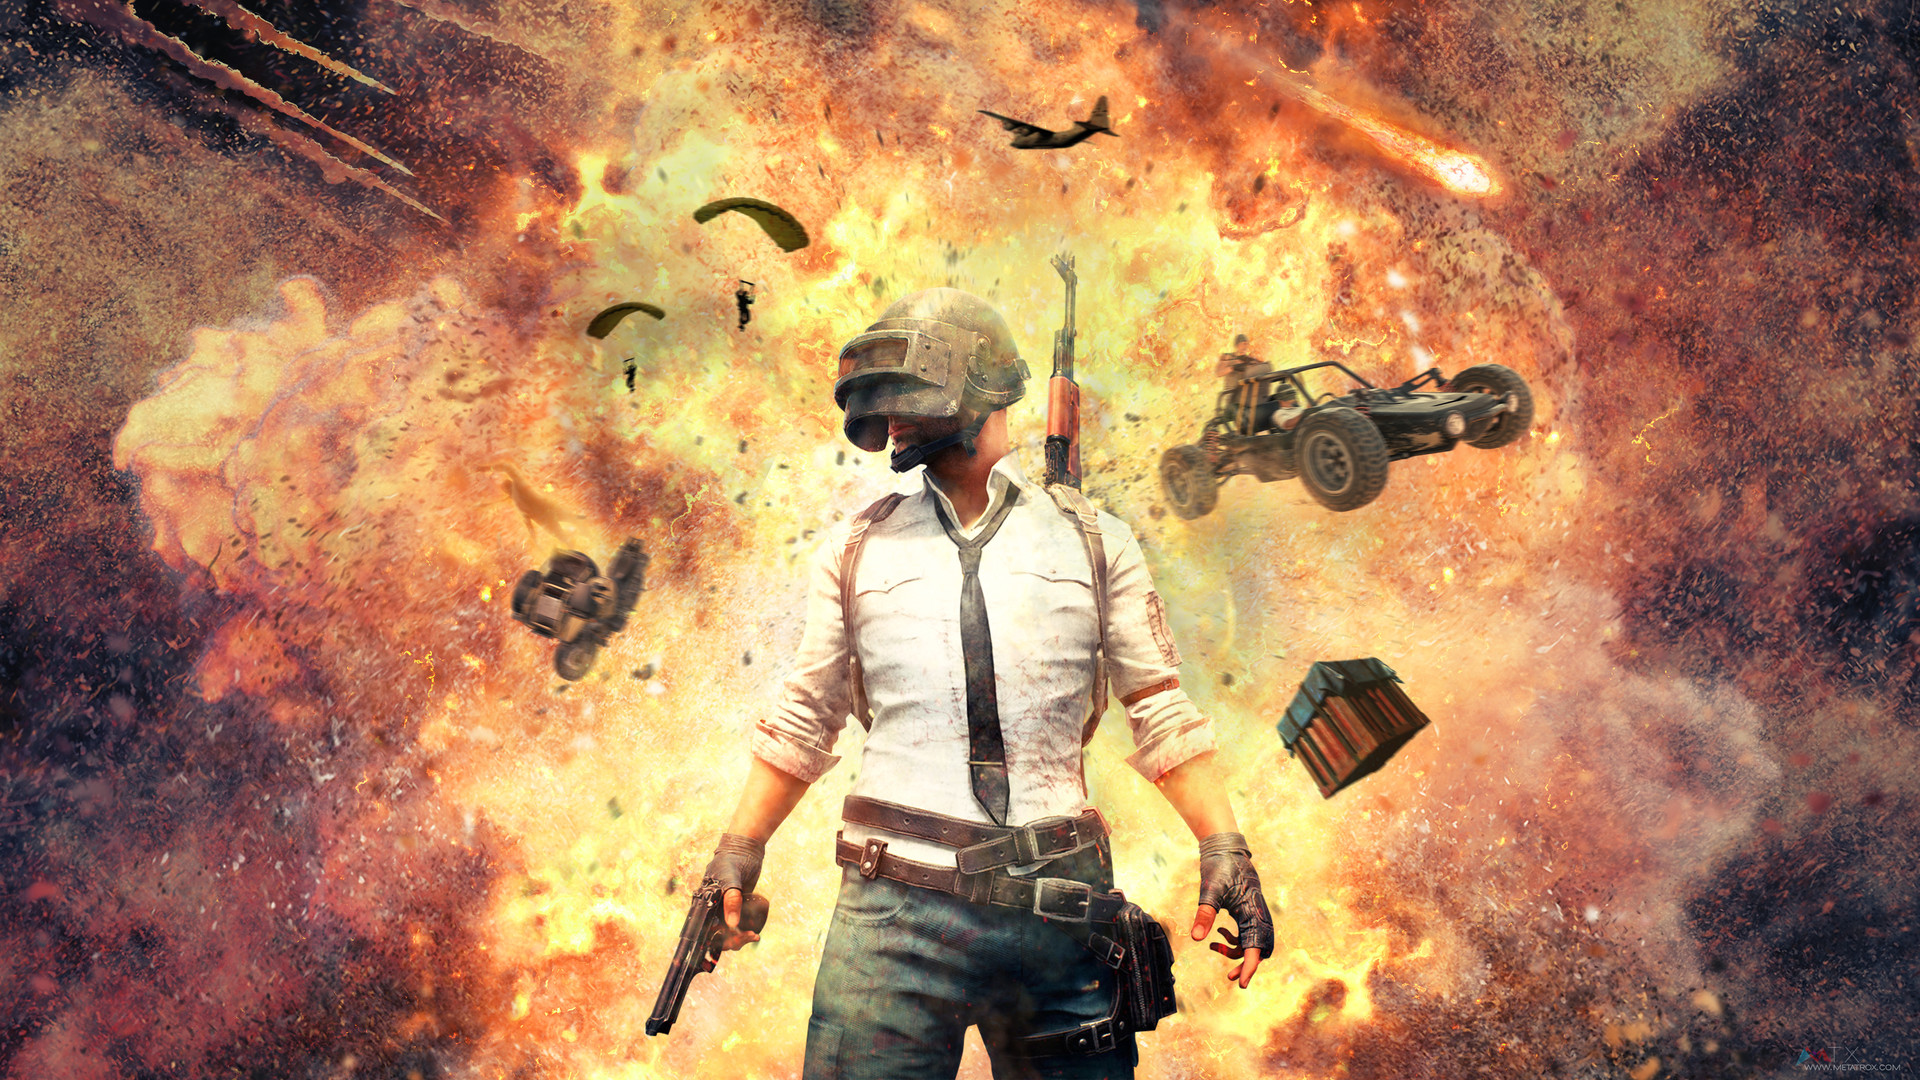 Pubg Wallpapers Hd Mobile: PUBG Wallpapers